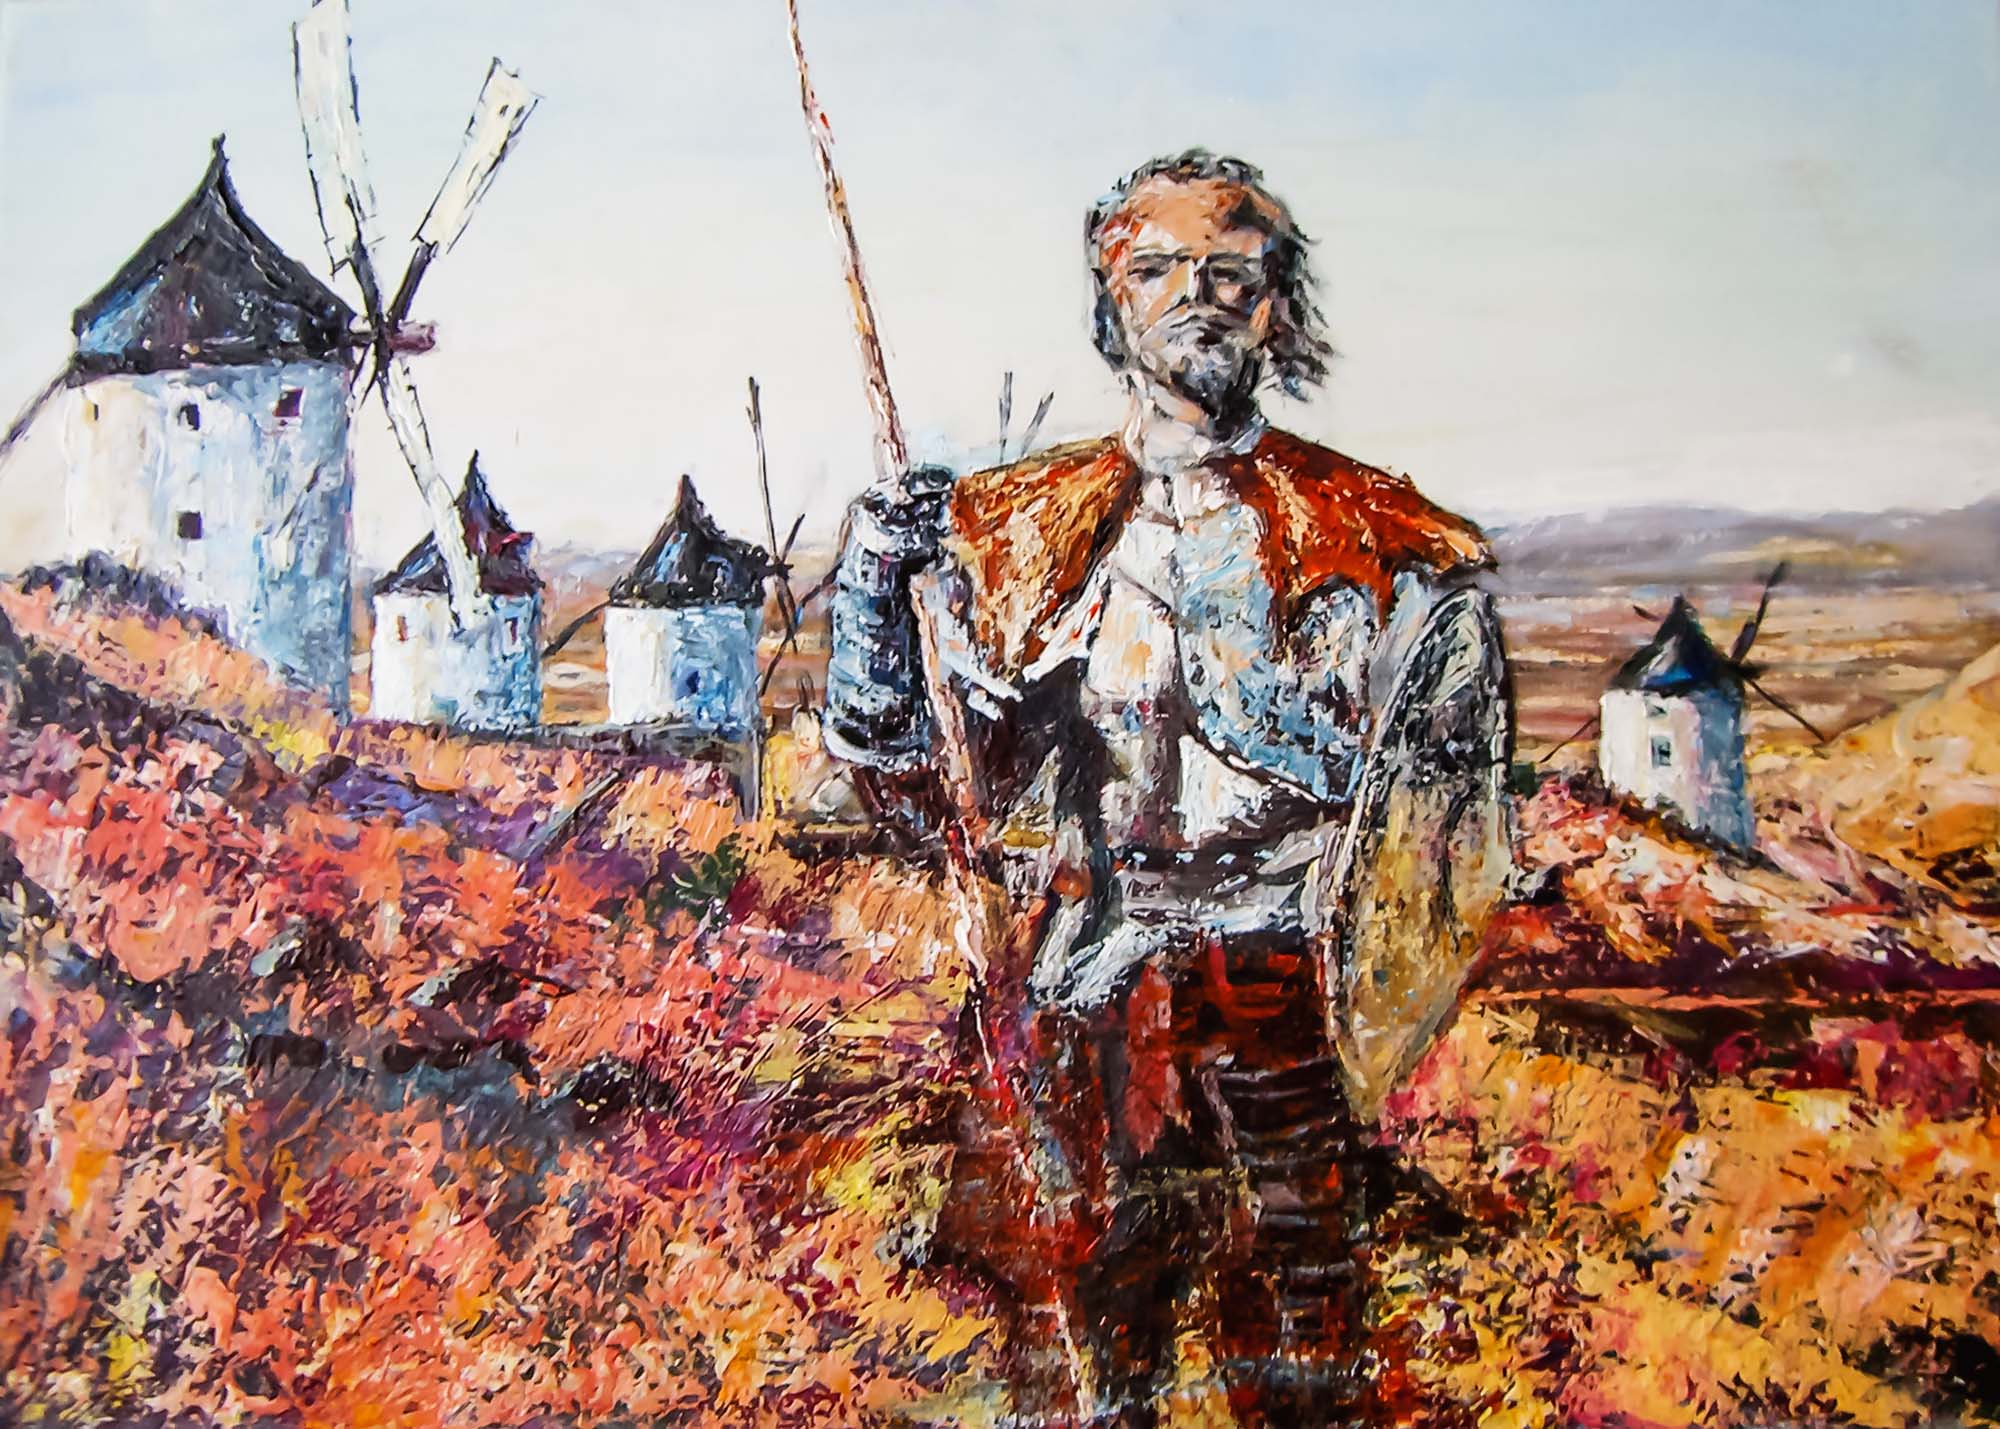 Don Quichote in front of windmills, Spain by Ria Kieboom